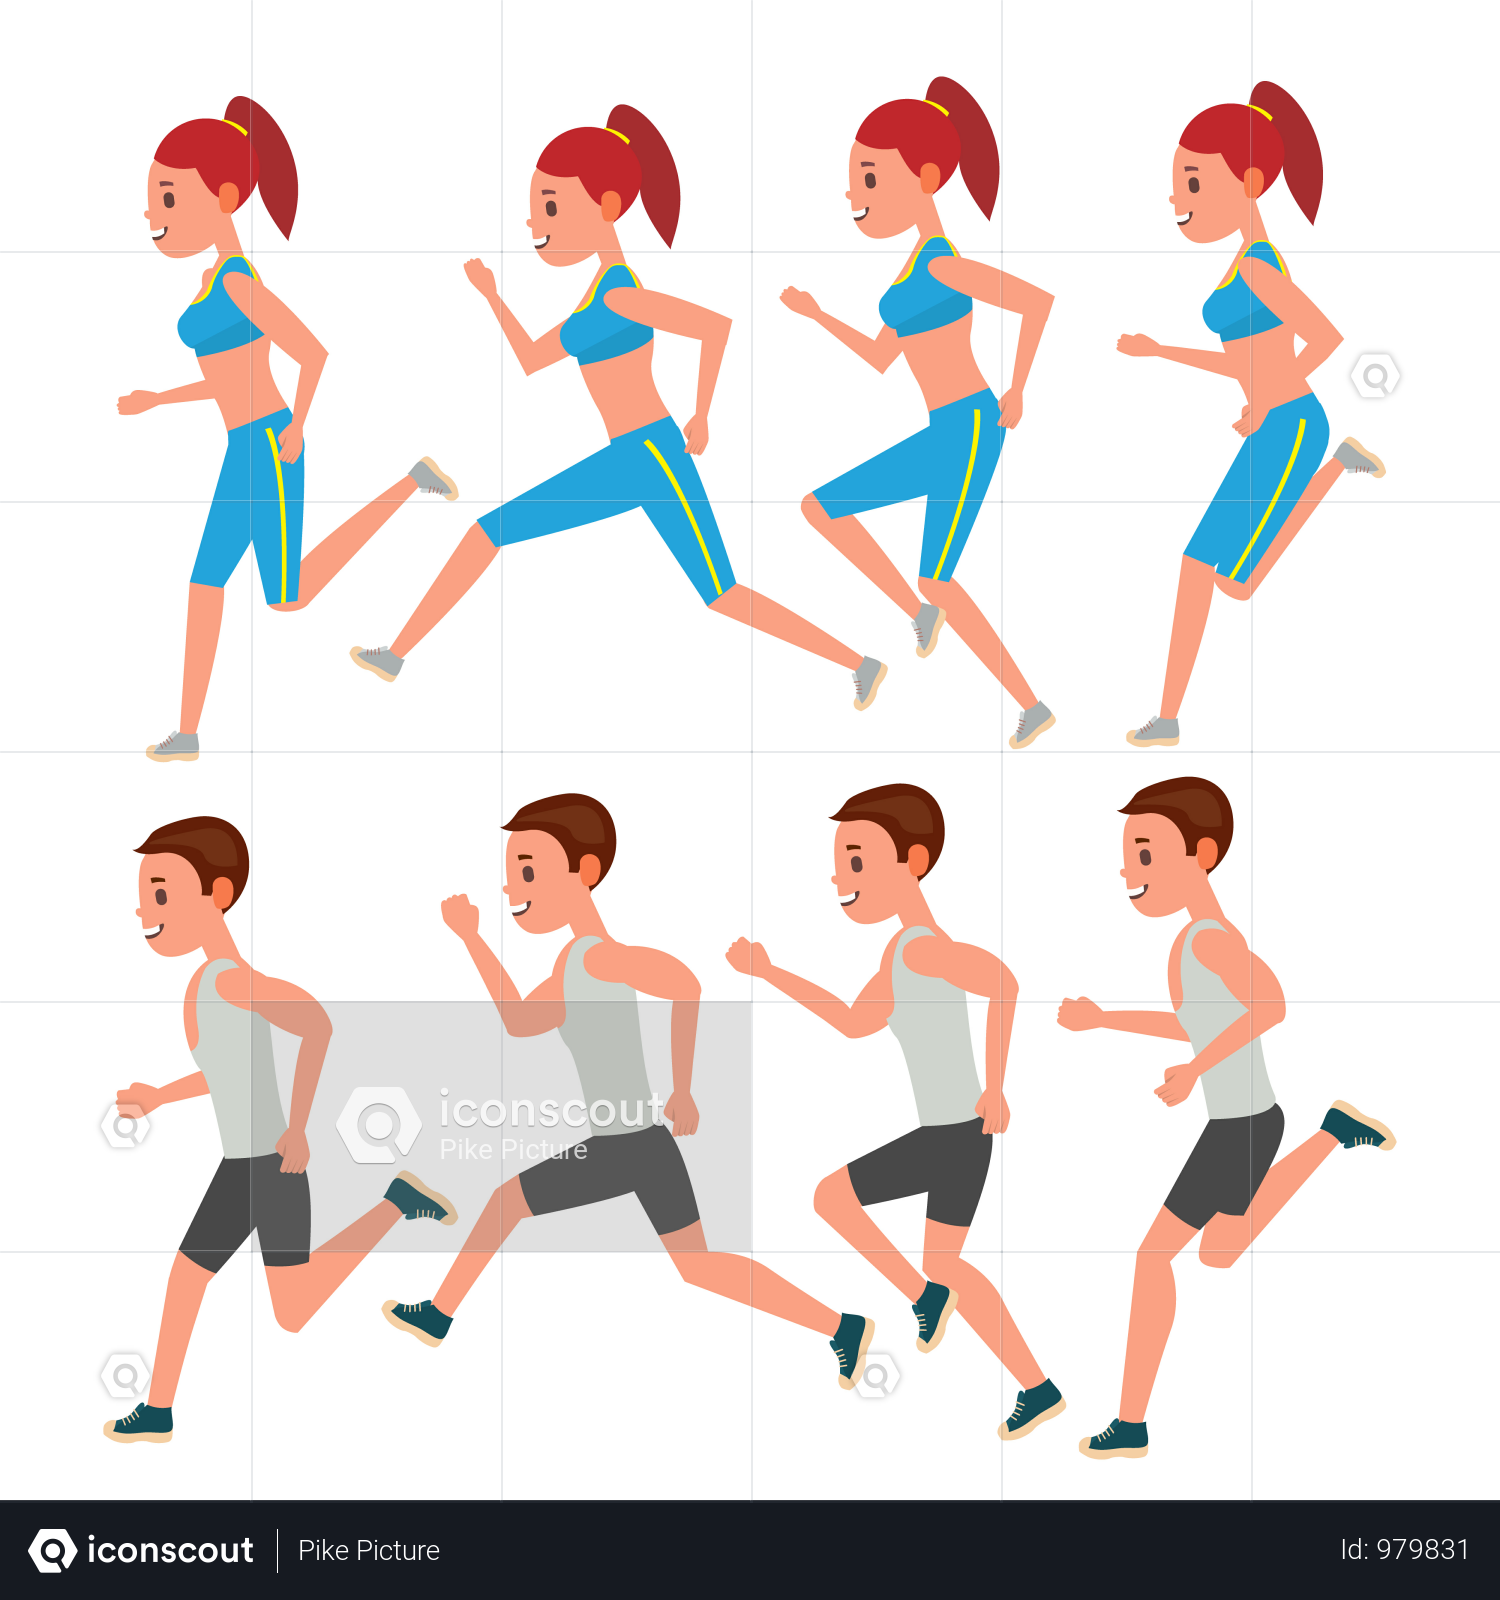 Premium Male And Female Running Vector Animation Frames Set Sport Athlete Fitness Character Marathon Road Race Runner Woman Side View Sportswear Jogging C Running Vector Vector Illustration People Vector Animation